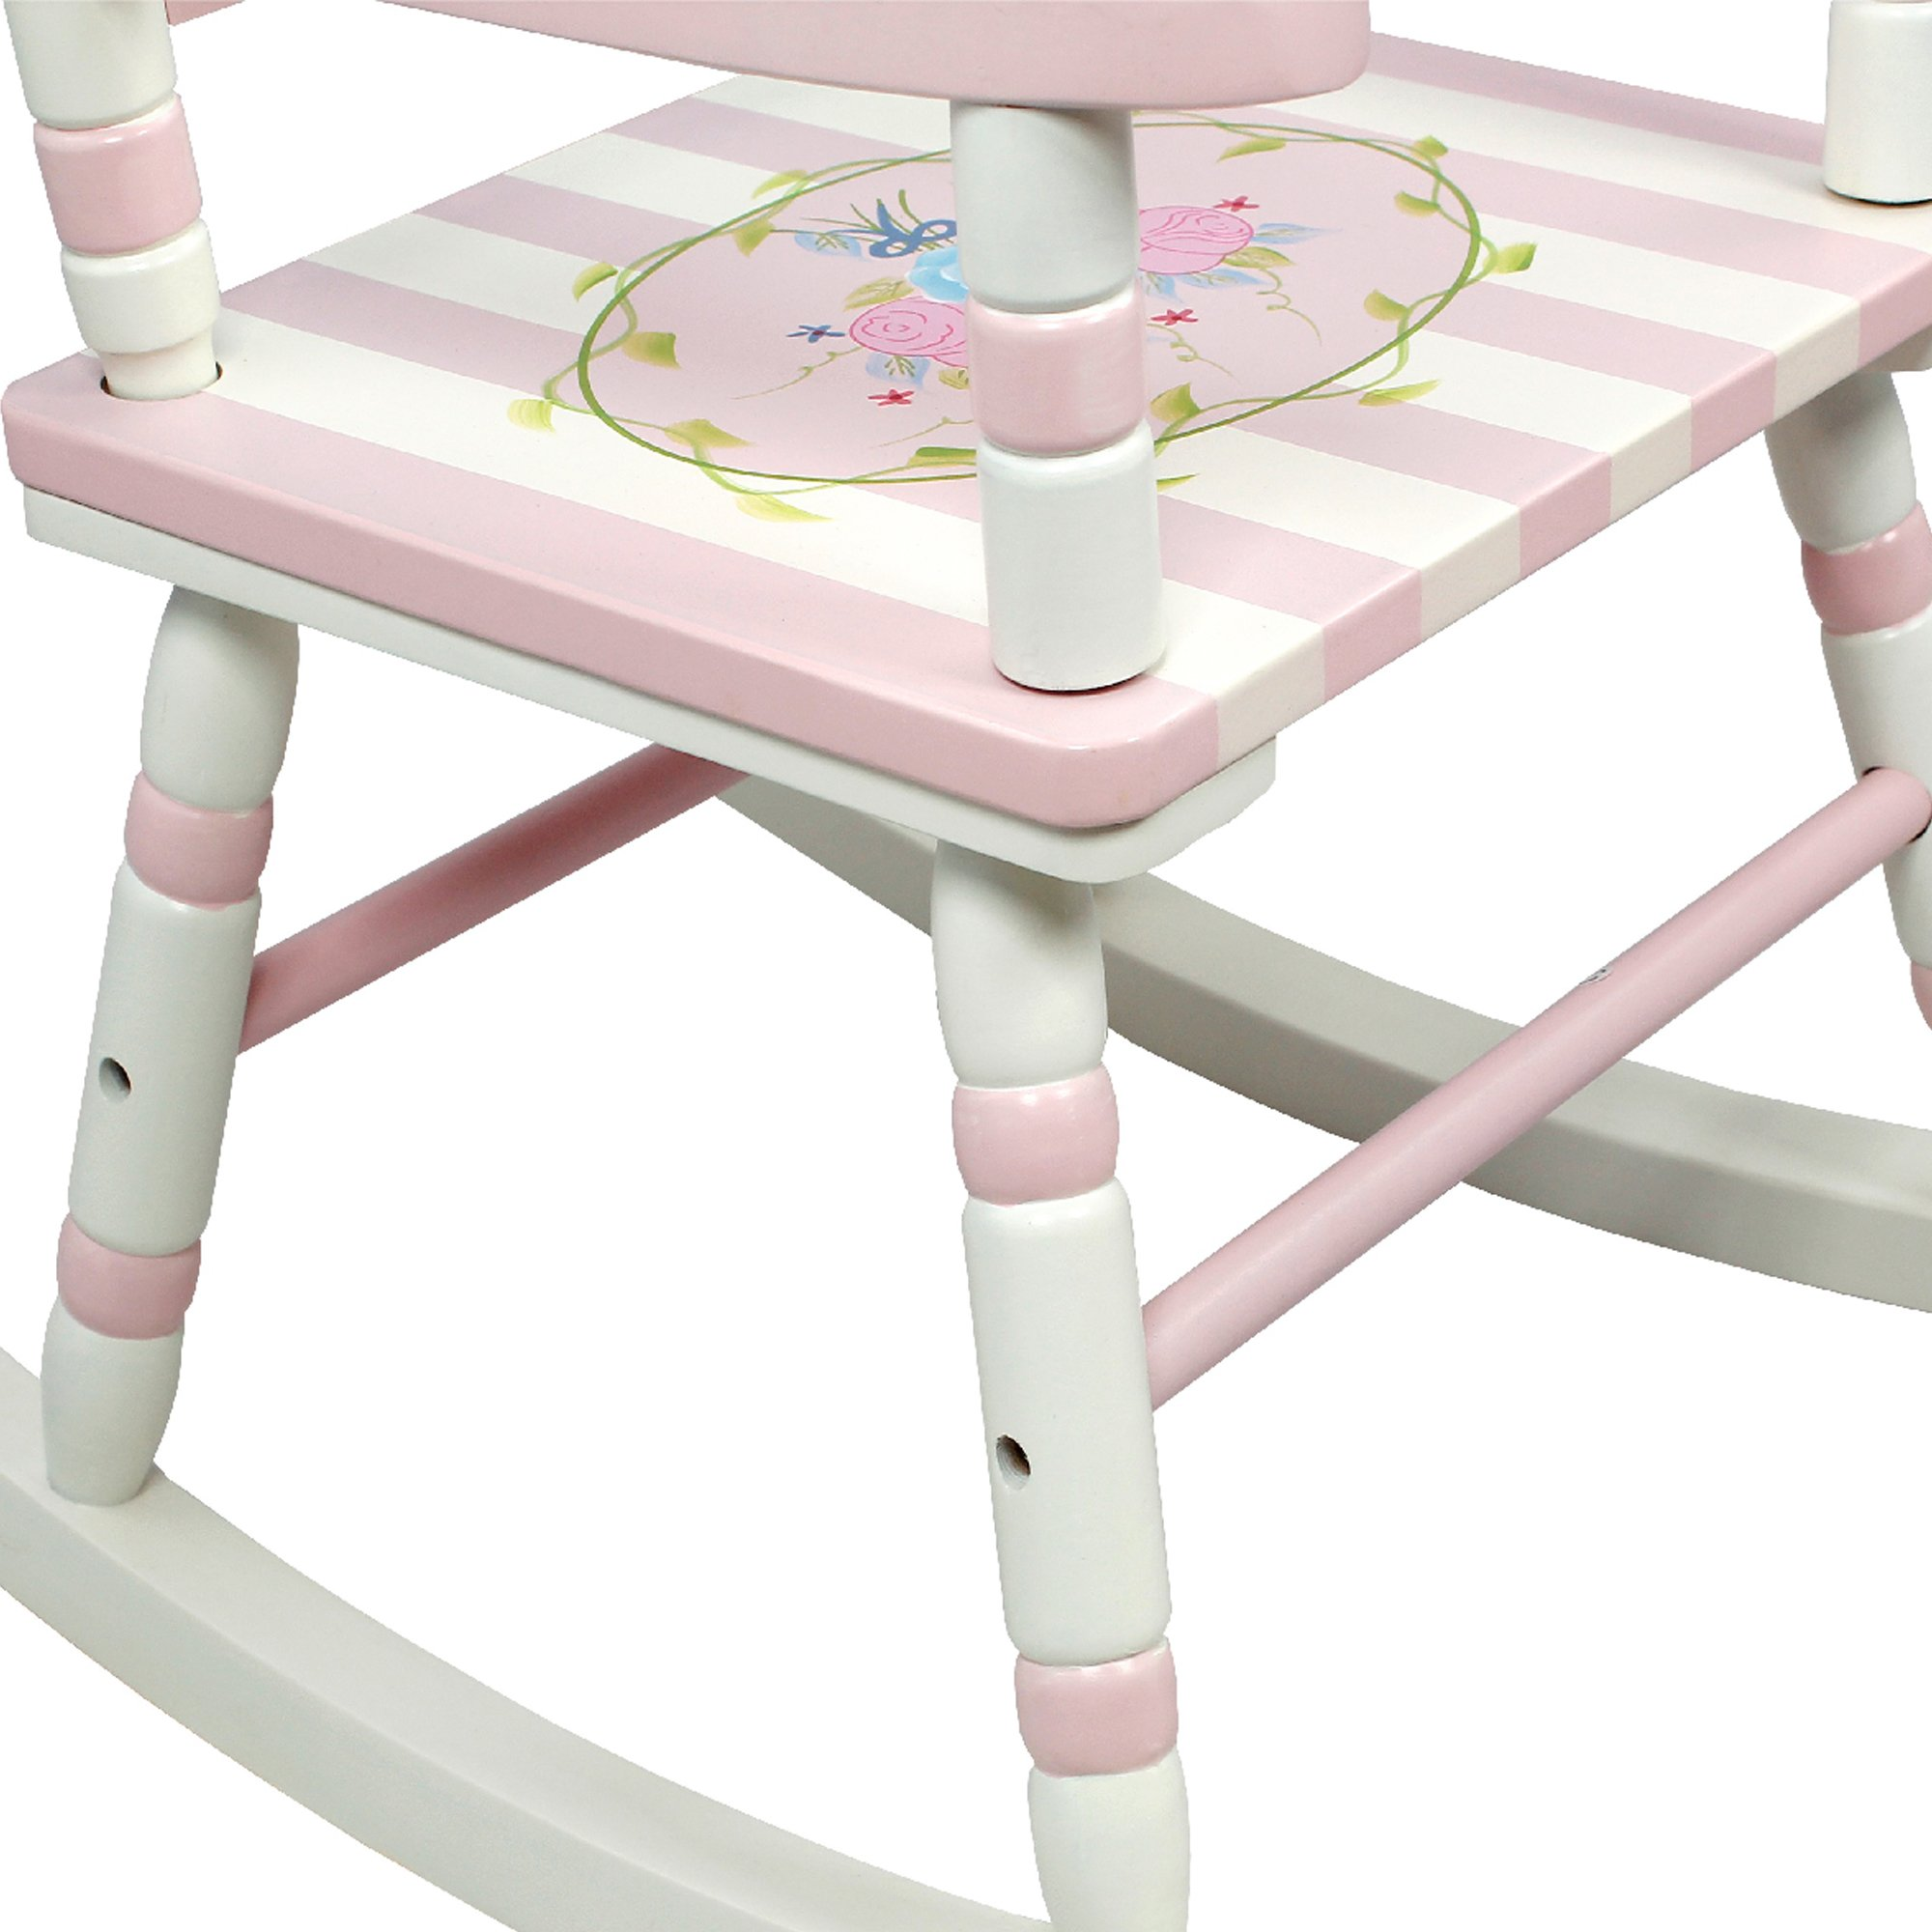 Teamson Design Corp Fantasy Fields - Bouquet Thematic Kids Wooden Rocking Chair Imagination Inspiring Hand Crafted & Hand Painted Details Non-Toxic, Lead Free Water-based Paint by Teamson Design Corp (Image #7)